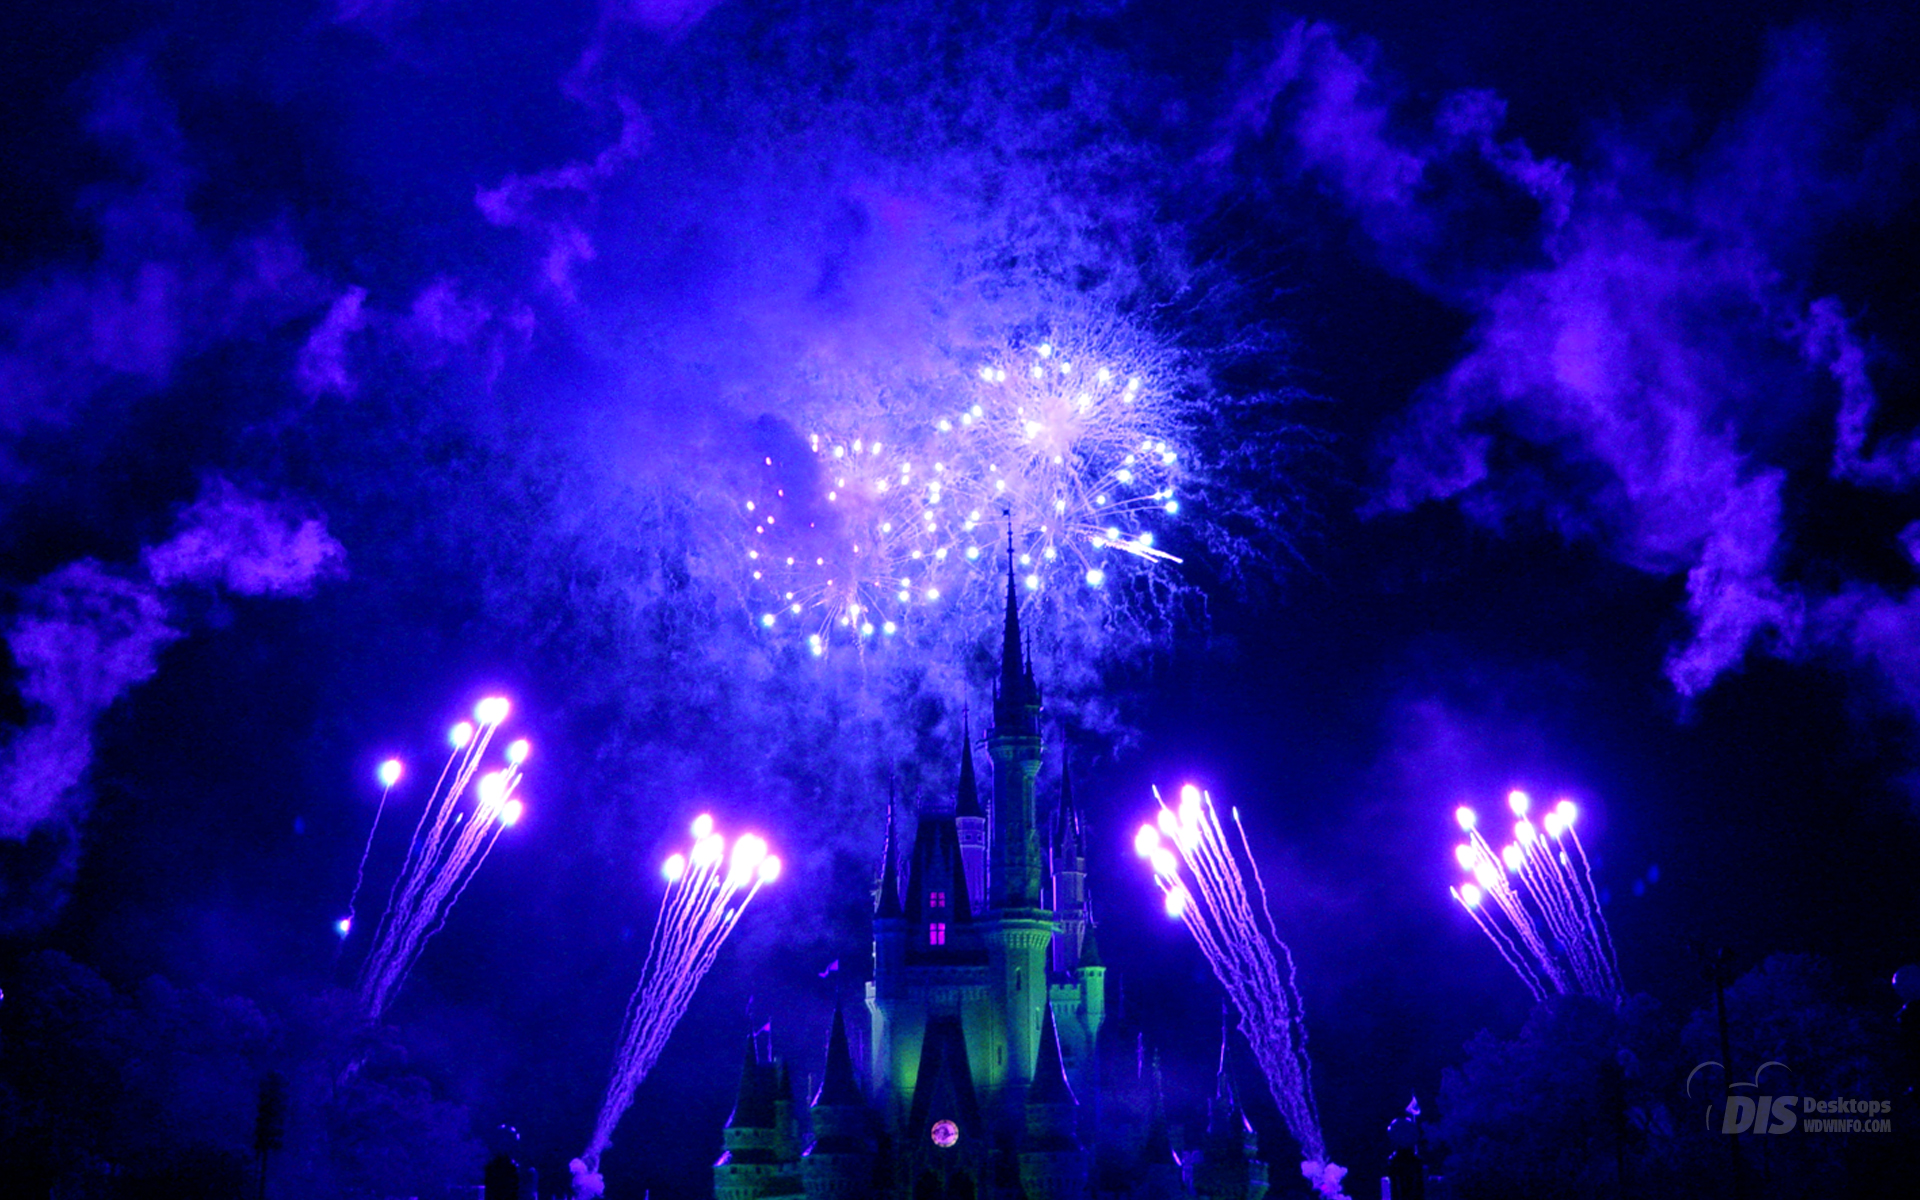 Desktops Desktop World Disney wallpapers HD   115497 1920x1200